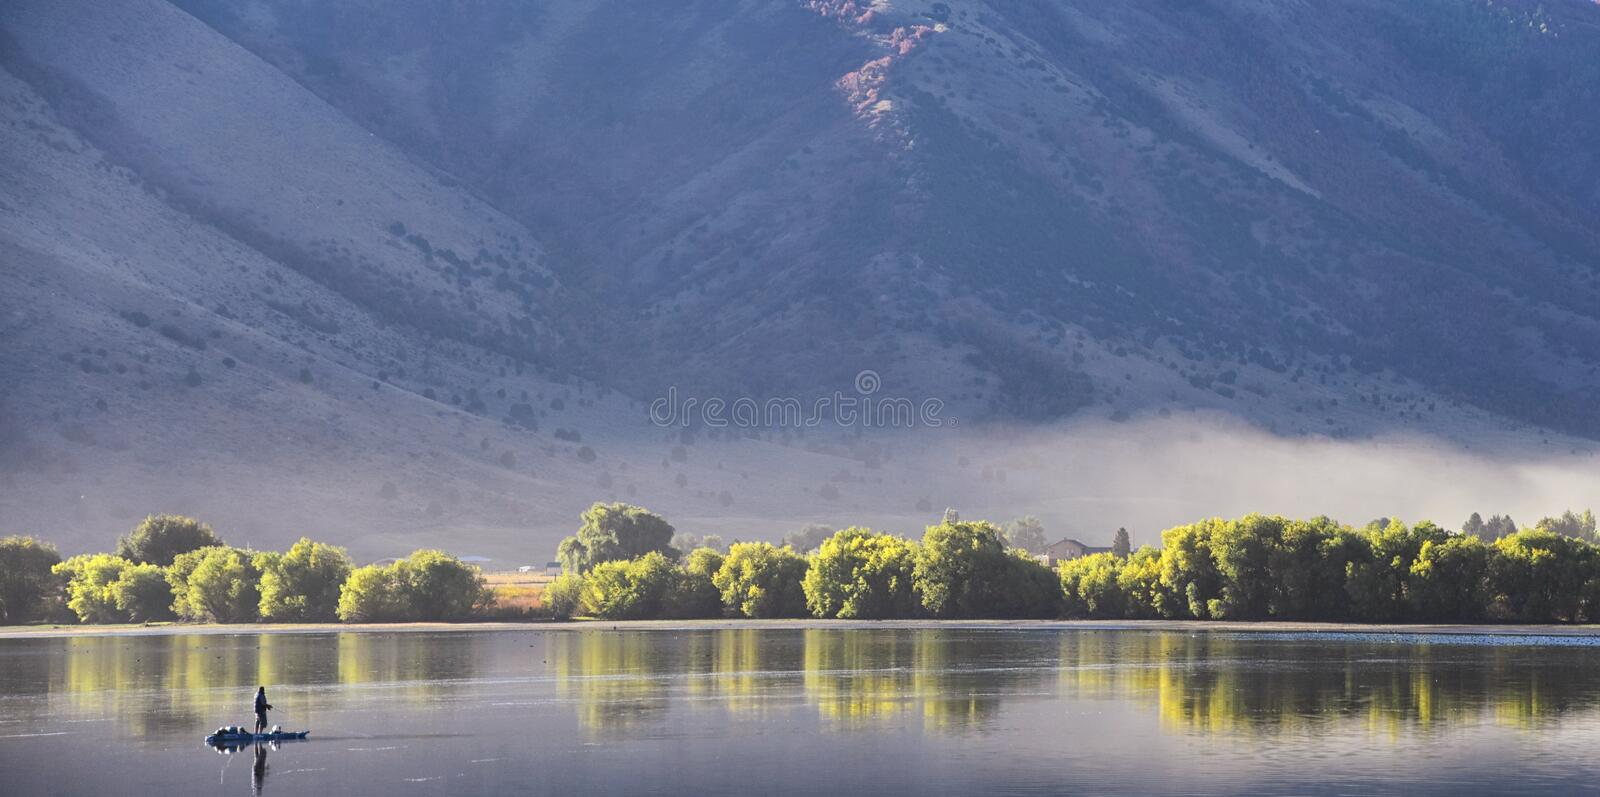 Mantua Reservoir landscape views. Mantua is a small town on the eastern edge Box Elder County, Historically known as Box Elder Val. Ley, Copenhagen, Flaxville royalty free stock images